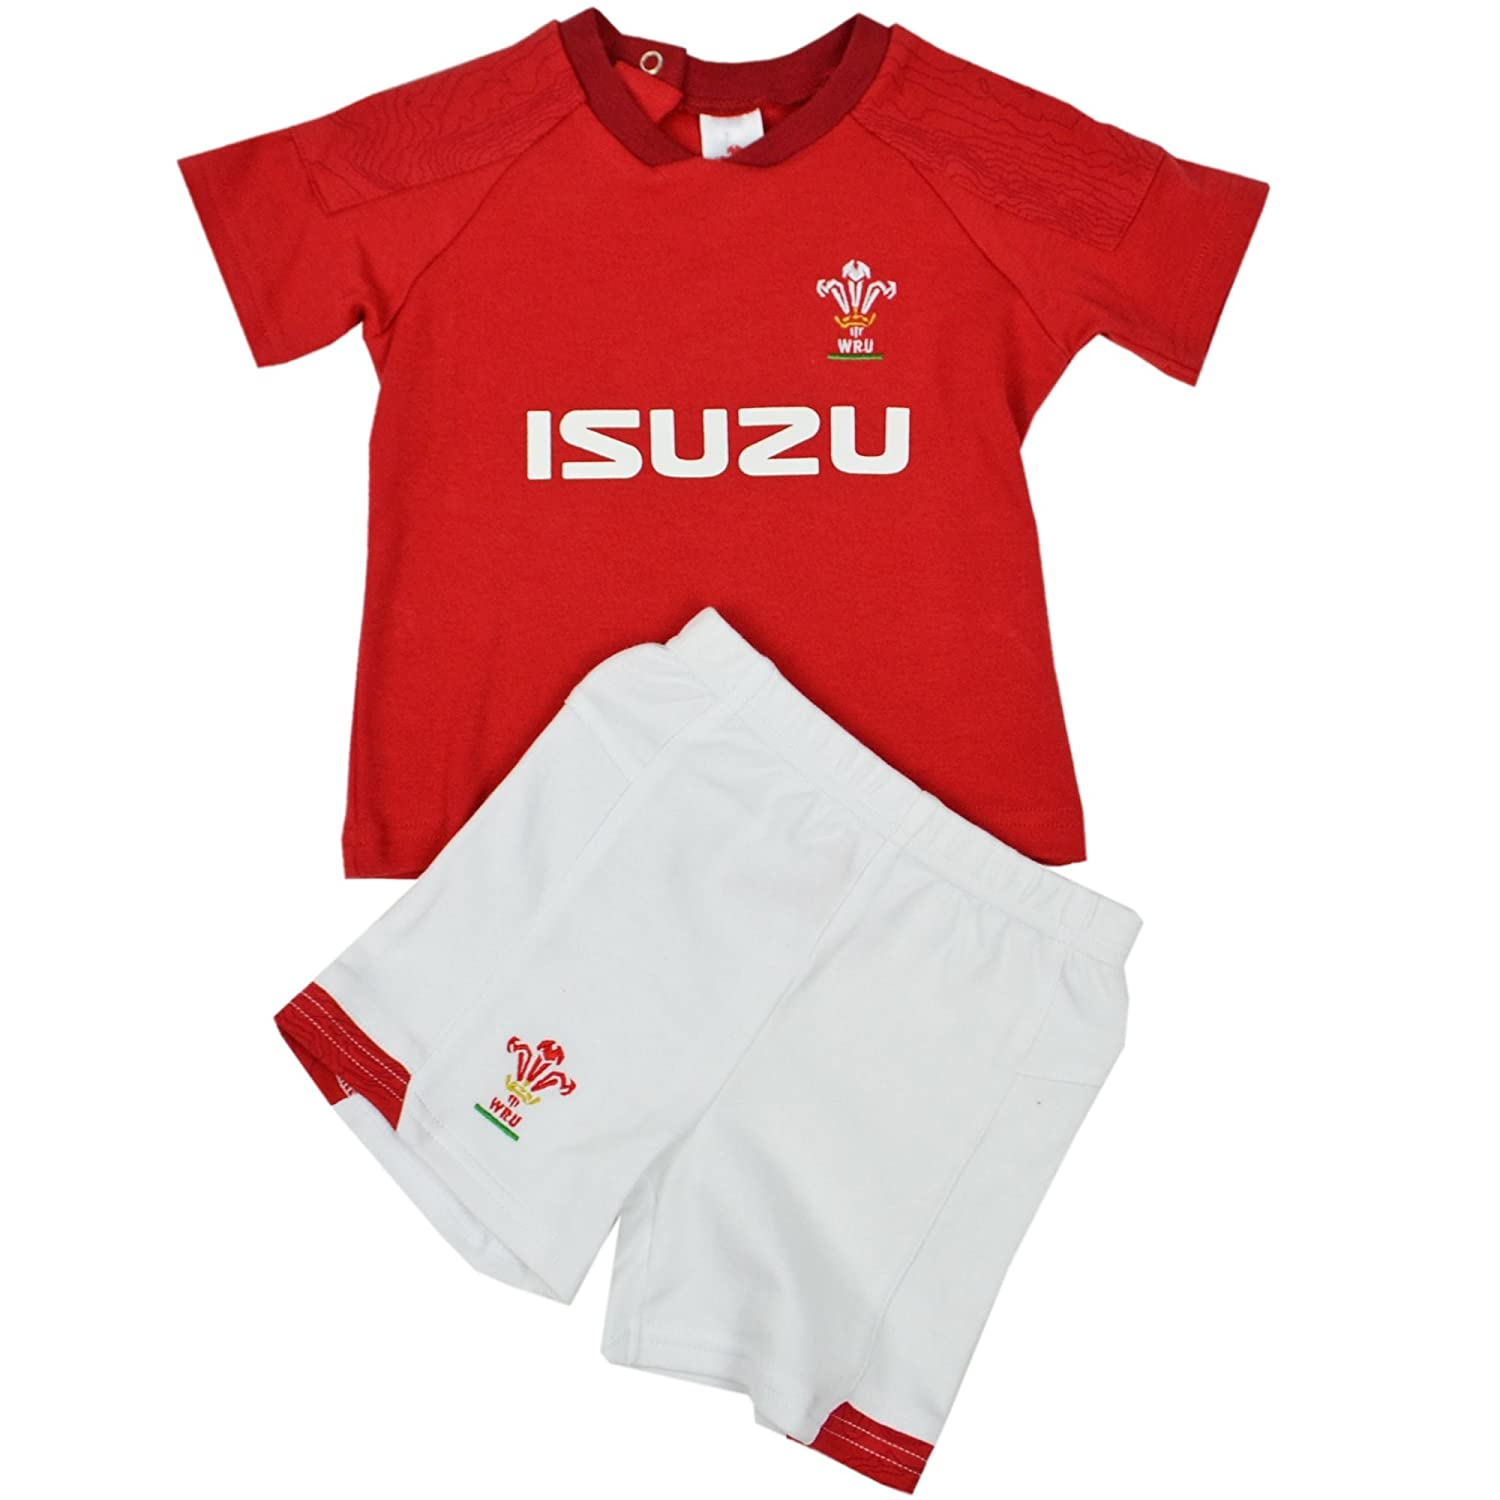 2018//19 Season 6-9 Months Wales WRU Official Rugby T-Shirt /& Shorts Set